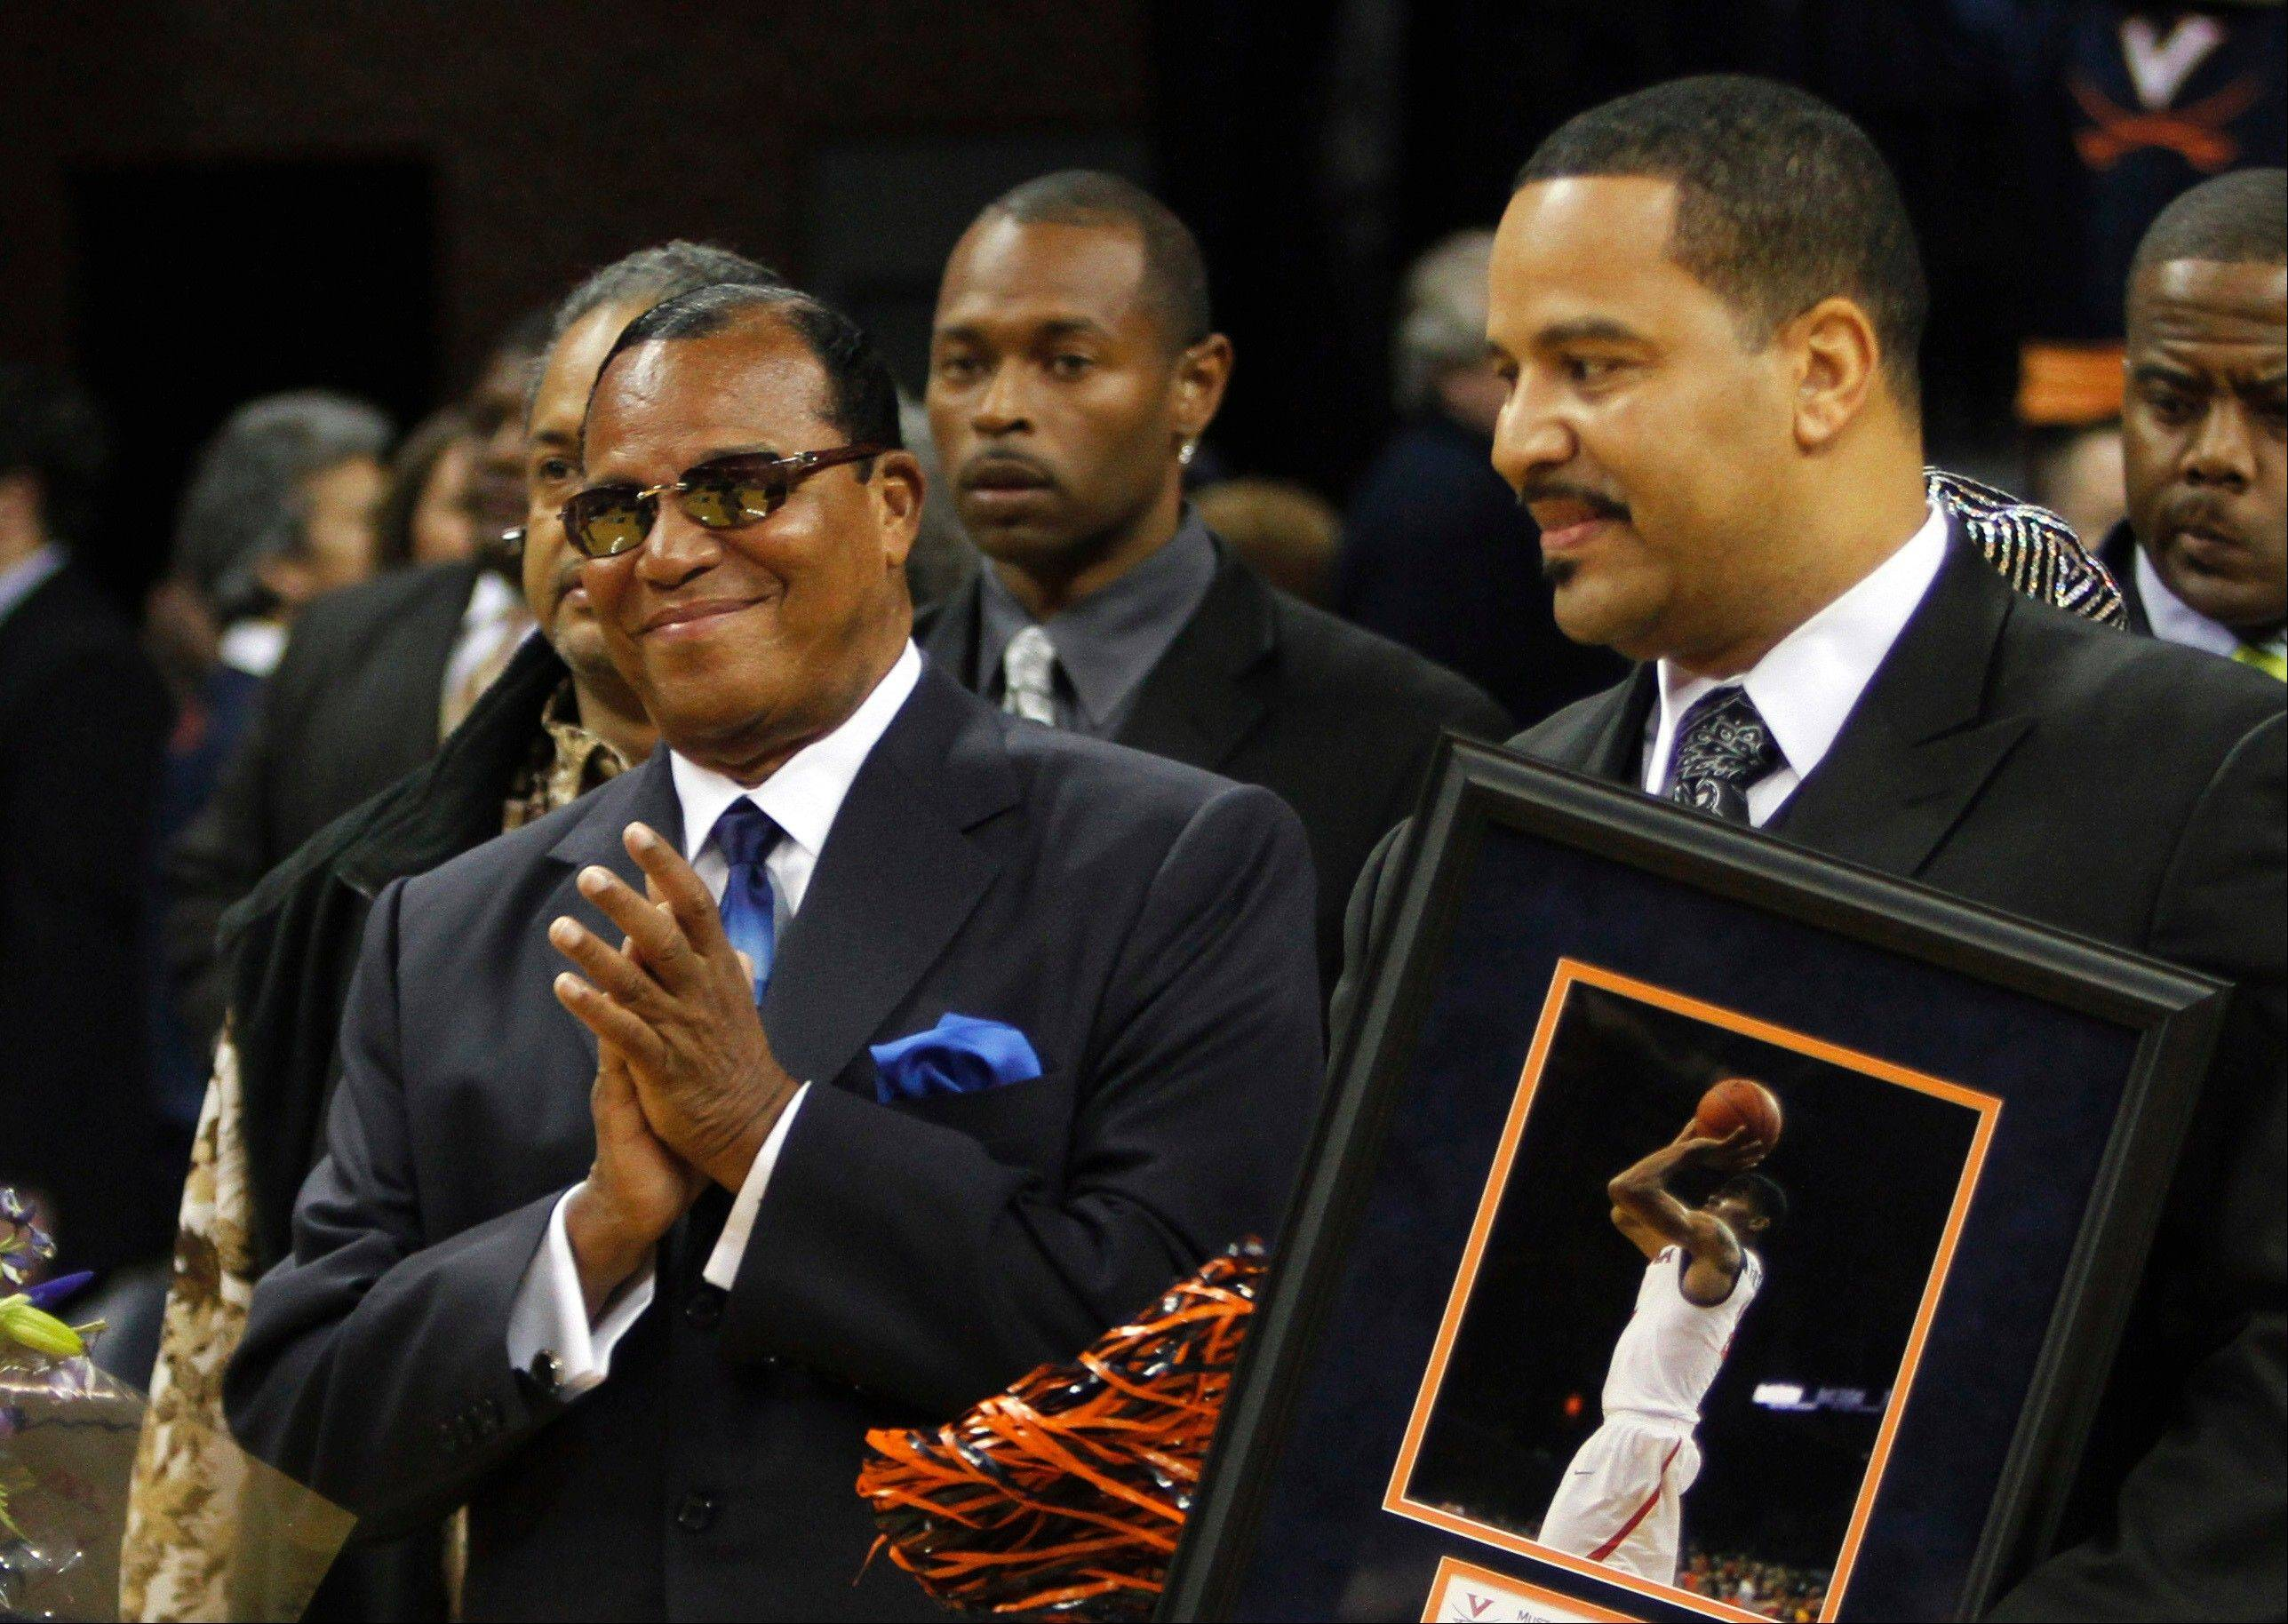 Nation of Islam Minister Louis Farrakhan, left, and son Mustapha Farrakhan attend a ceremony in 2011 honoring University of Virginia seniors, including Mustapha�s son, at a college basketball game.